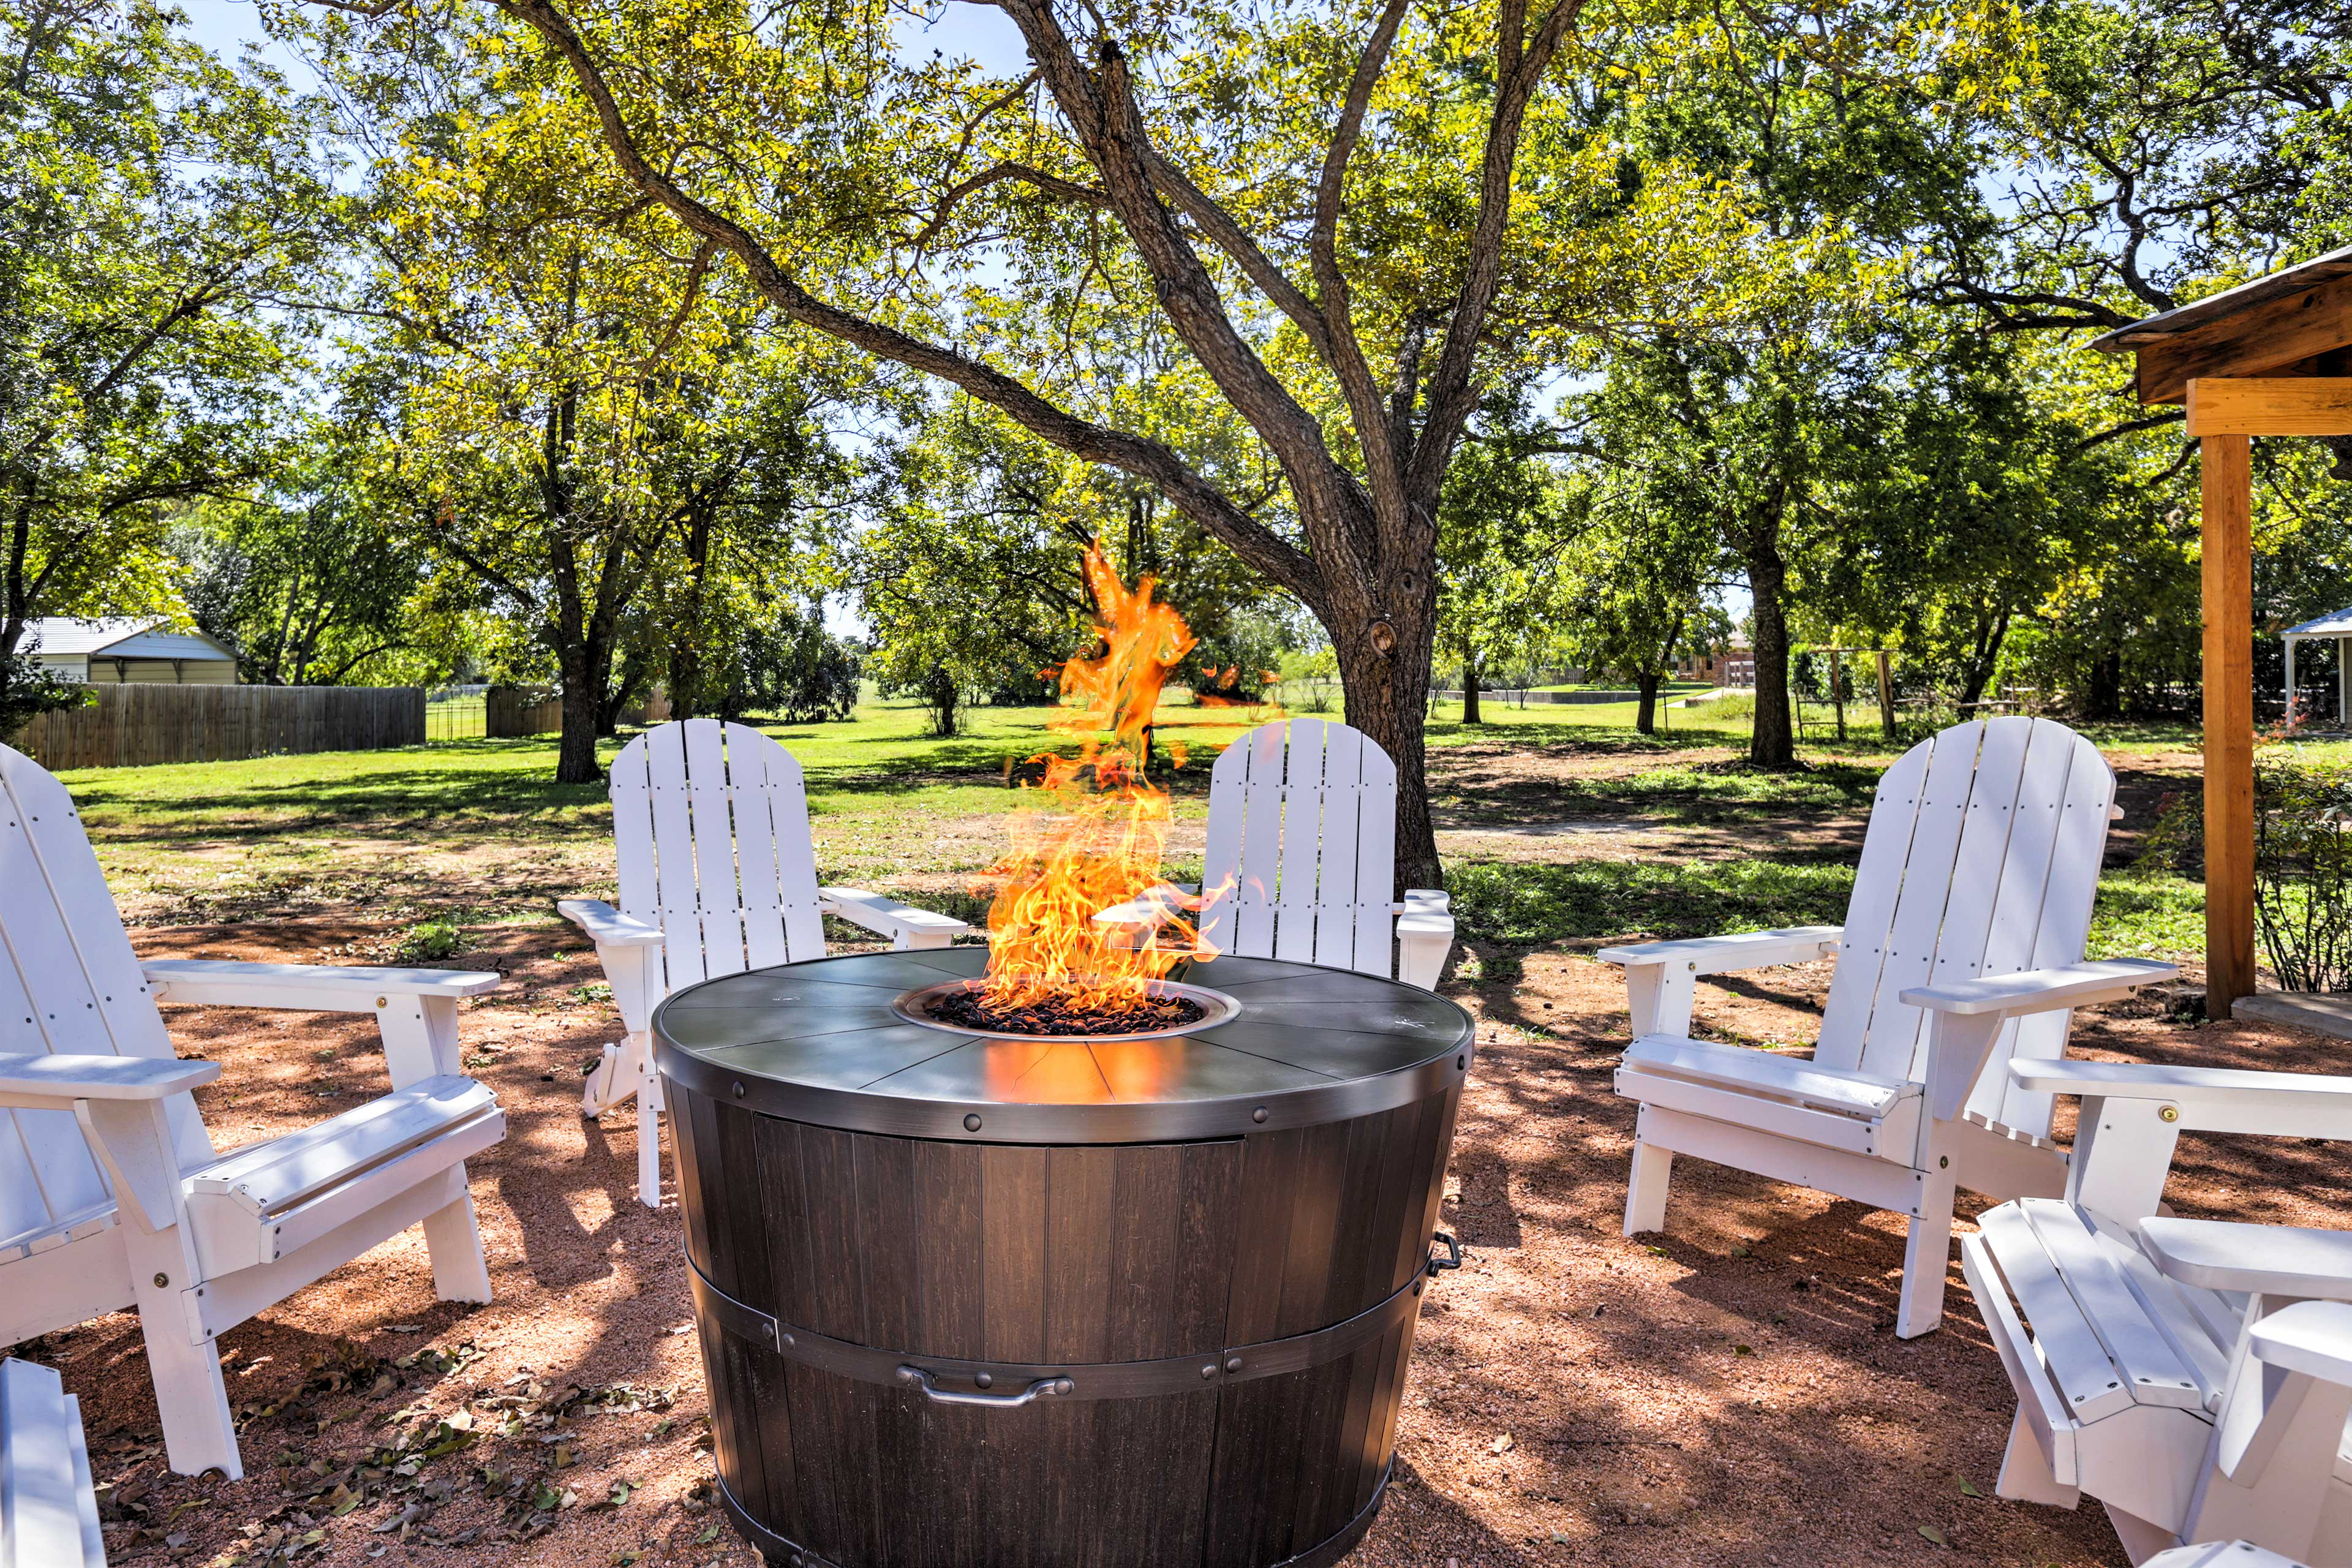 Keep warm on cool nights around the gas fire pit with 8 Adirondack chairs.